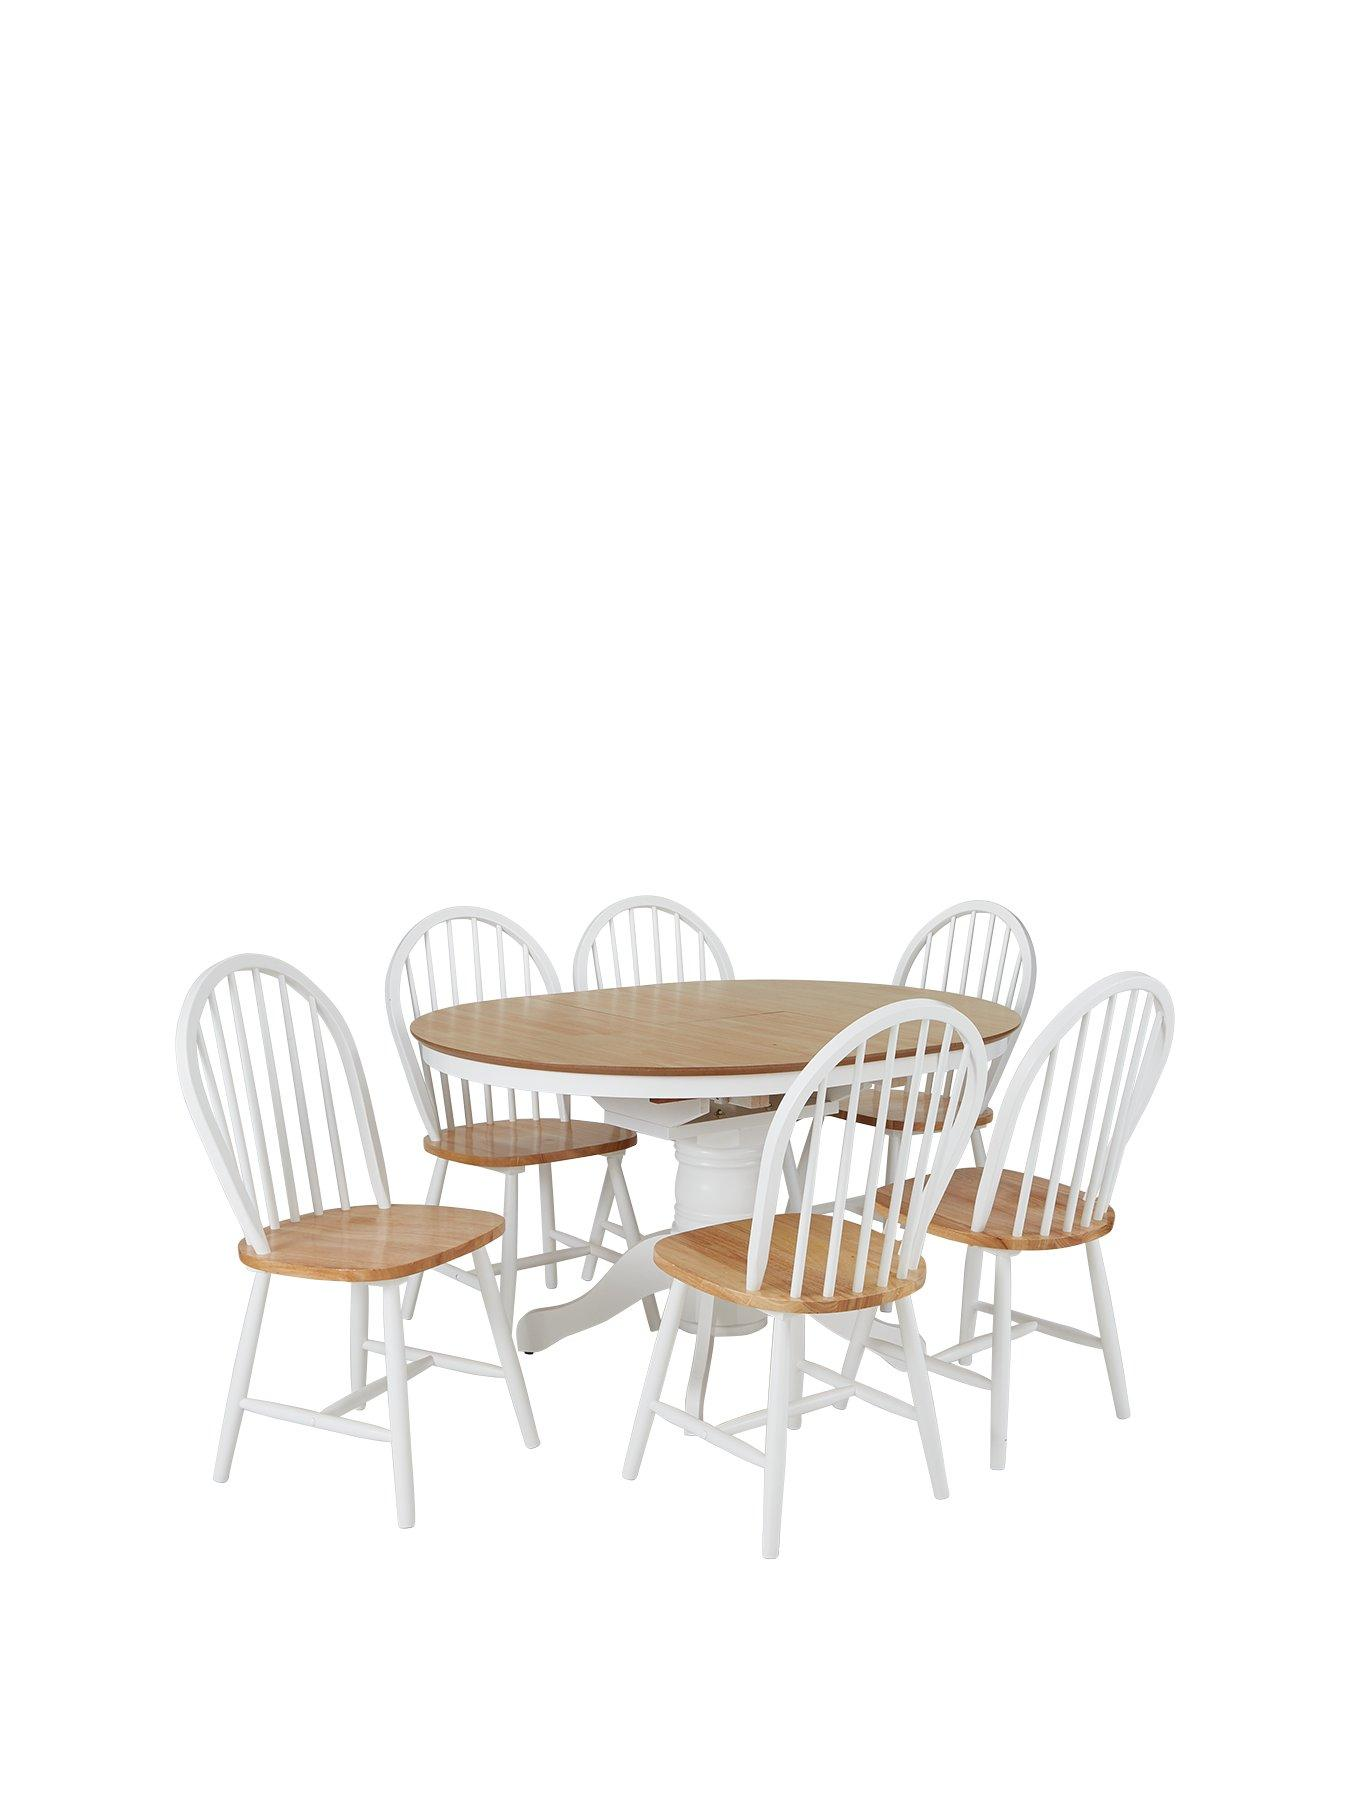 lidl fishing chair folding chairs at sam s club dining table sets tables 6 very co uk kentucky 100 130 cm extending round